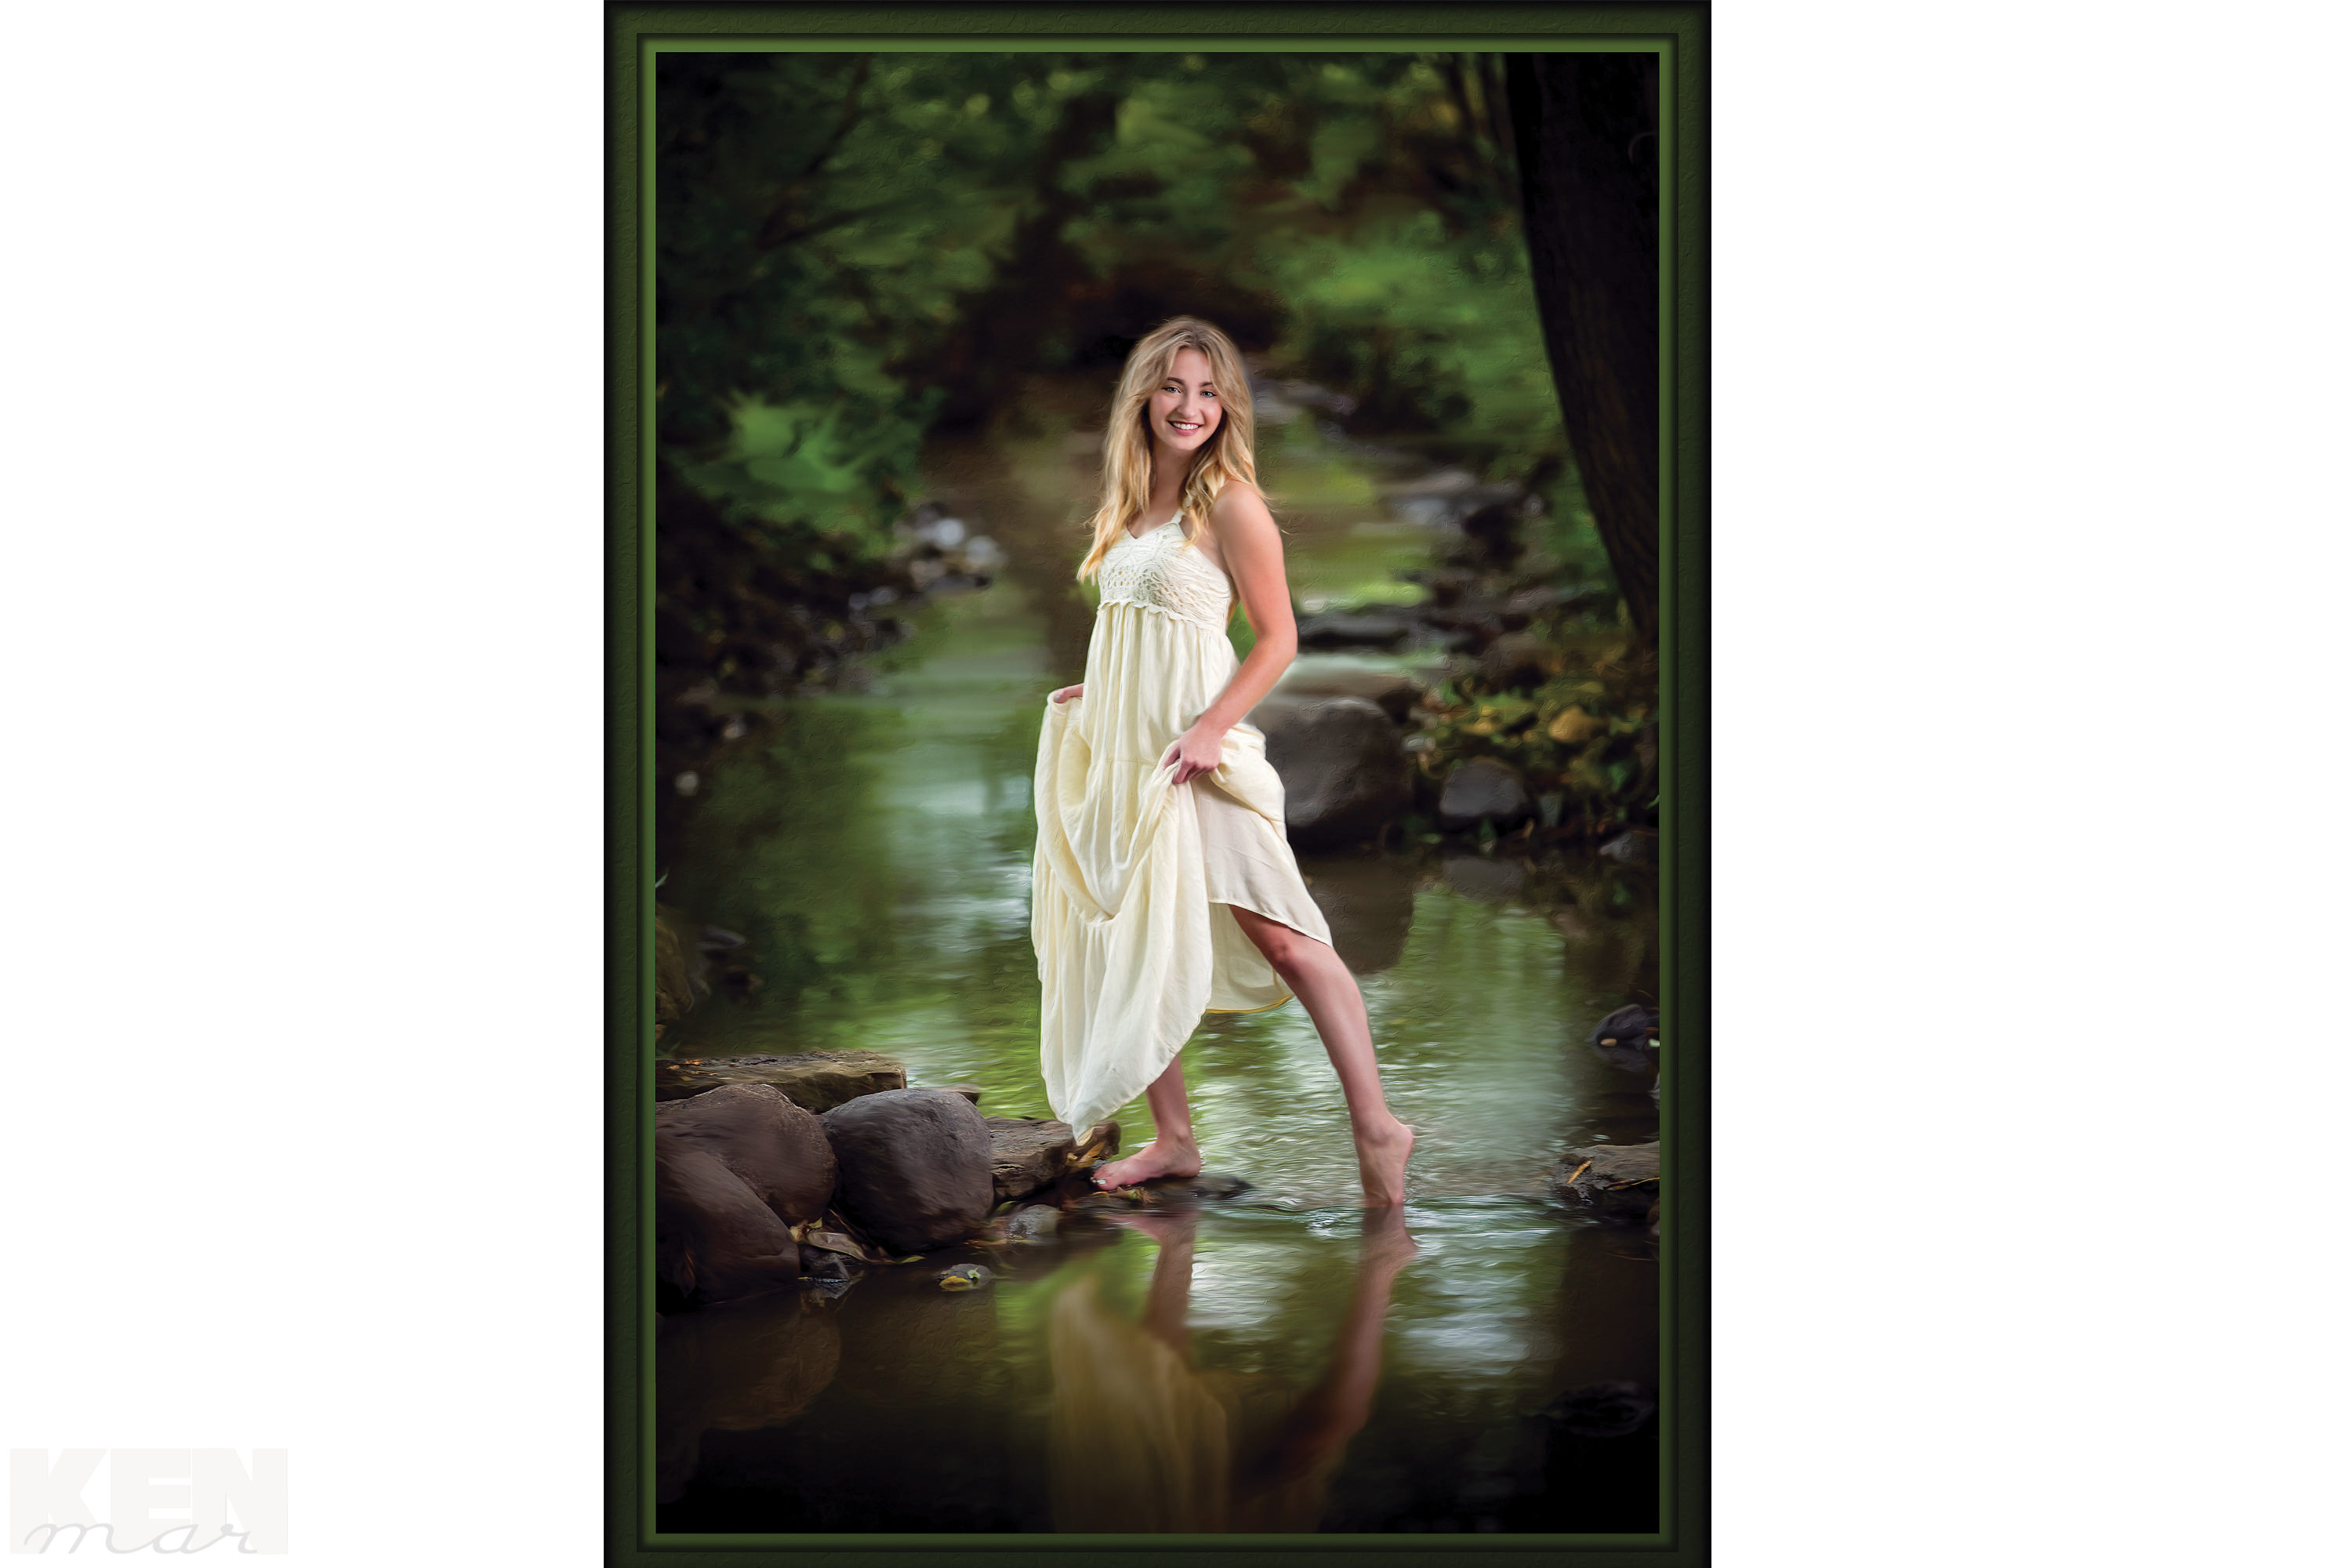 Young woman posed outdoors by stream KenMar / 1120 North Hickory Farm Lane / Appleton, WI 54914 / 920-734-5328